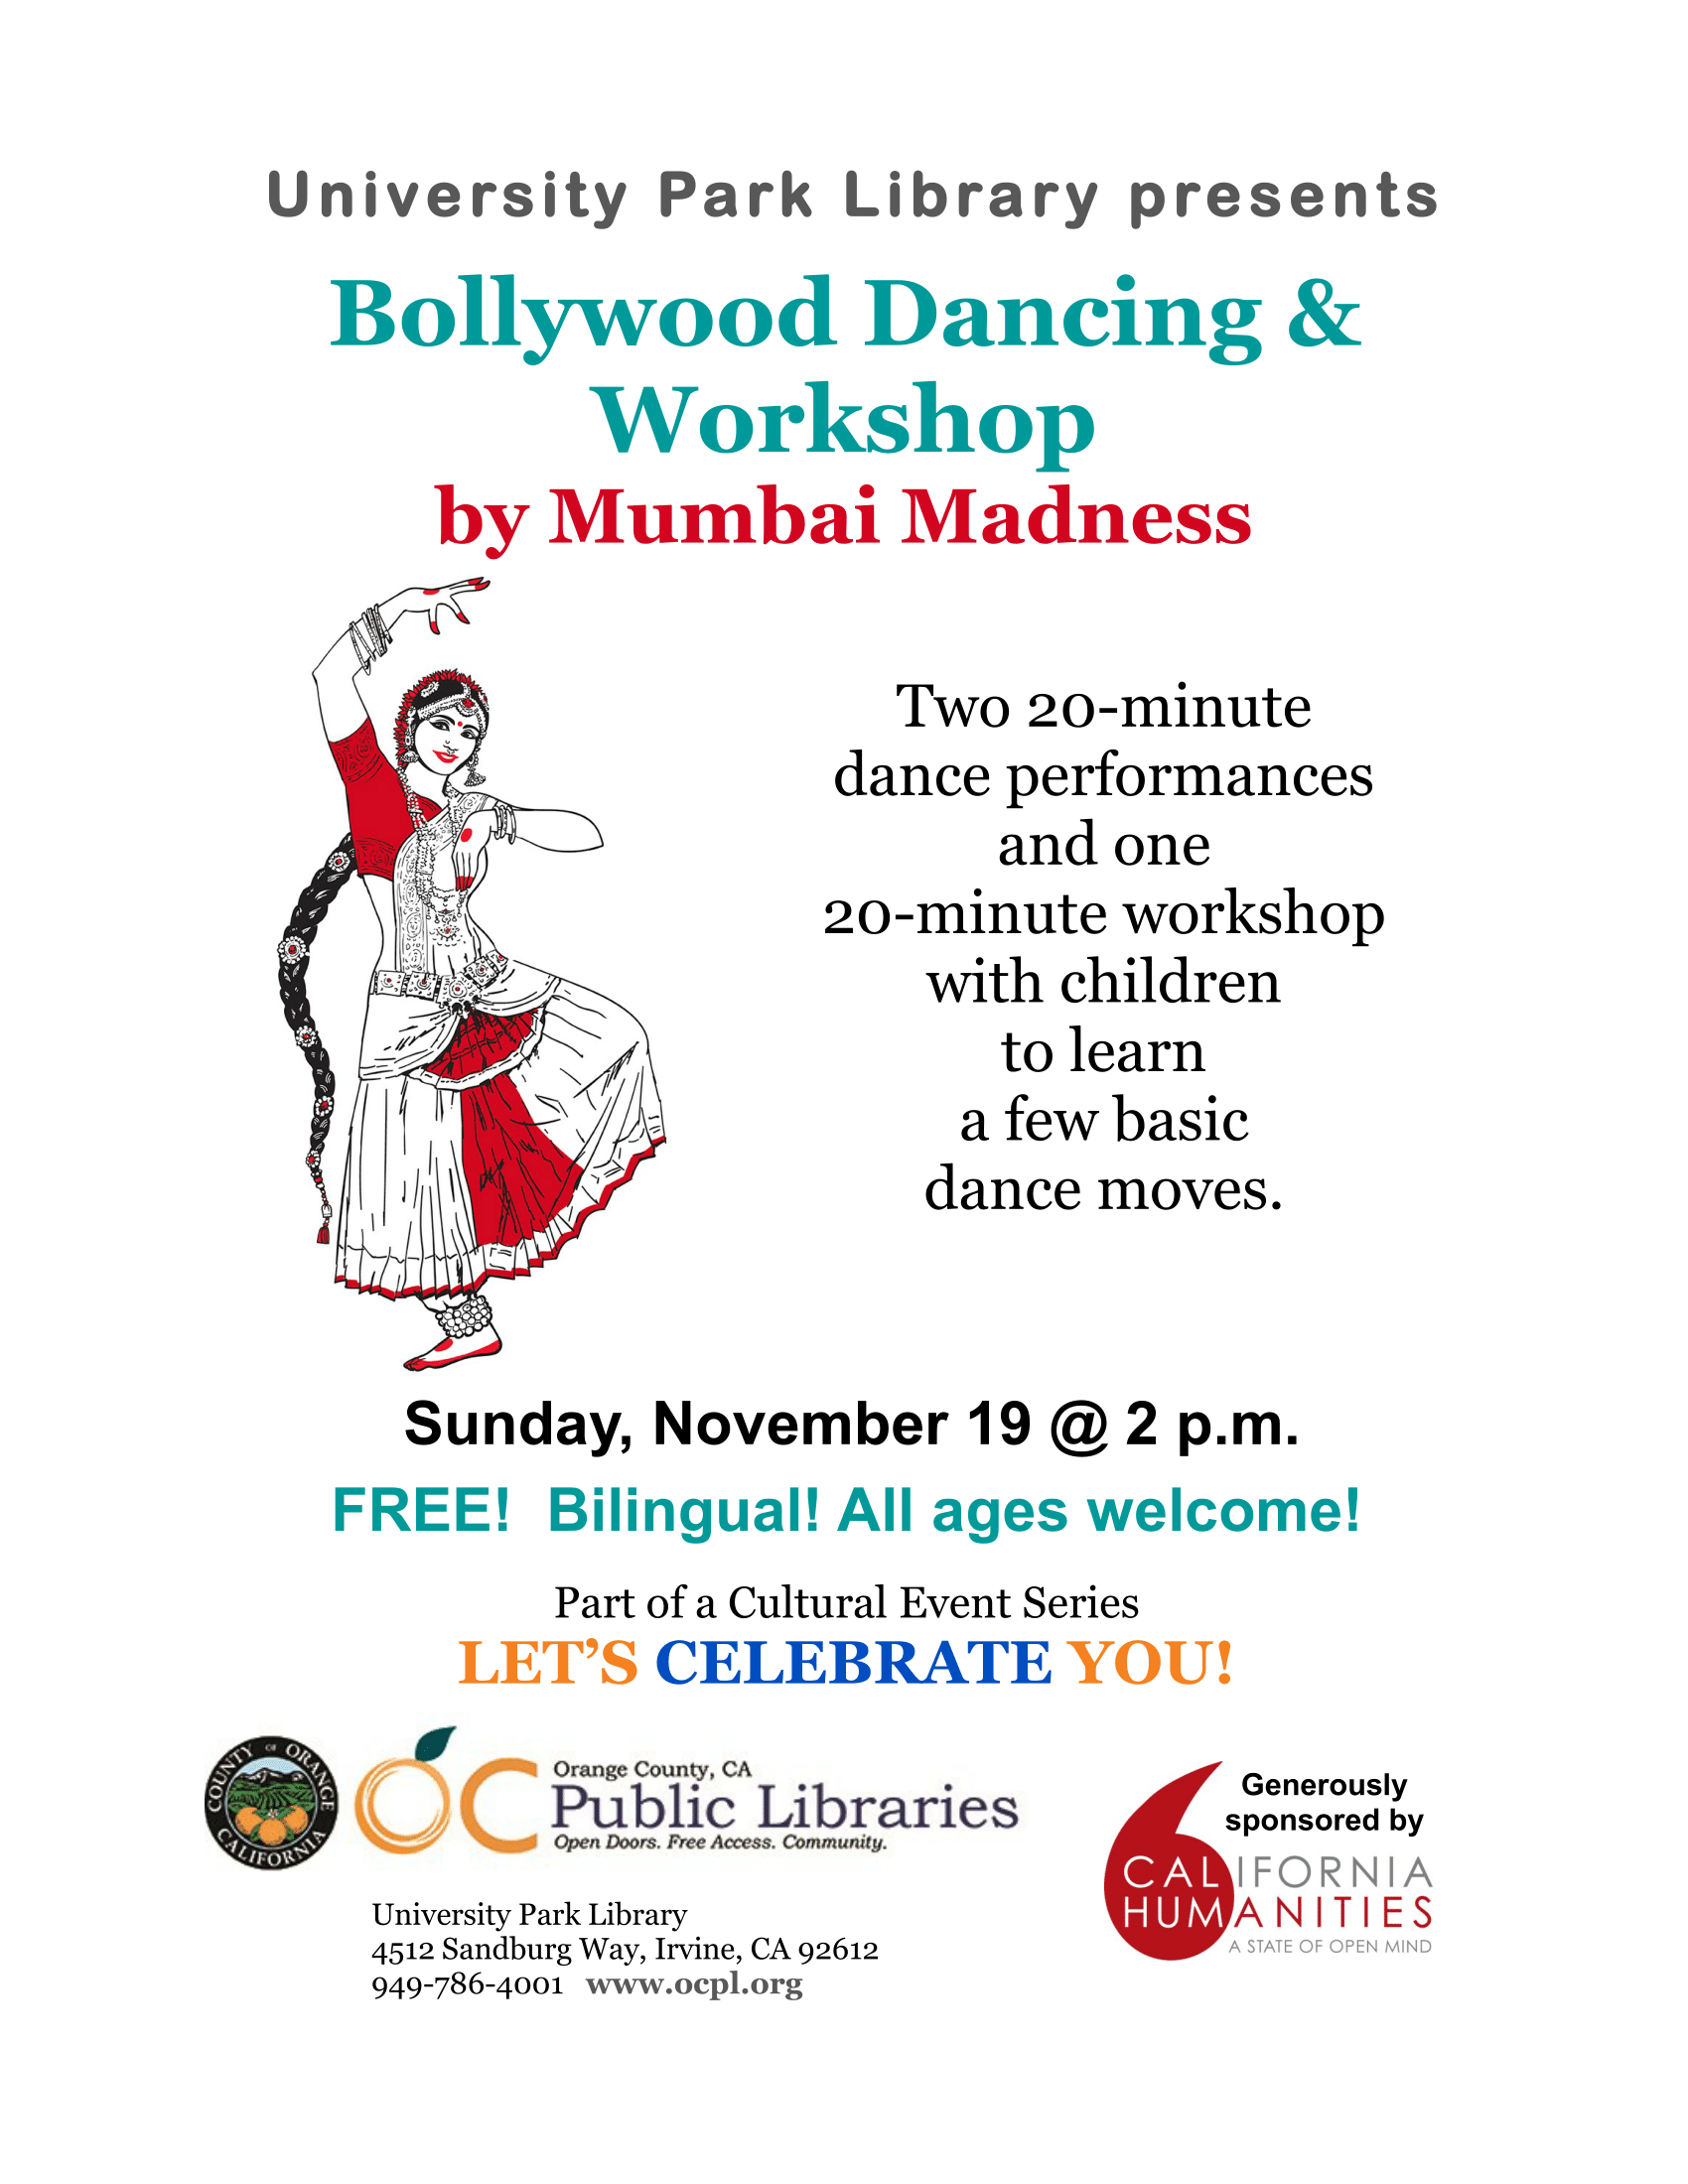 Mumbai Madness Bollywood Dancing & Workshop 11-19-2017 University Park Library Irvine Orange County